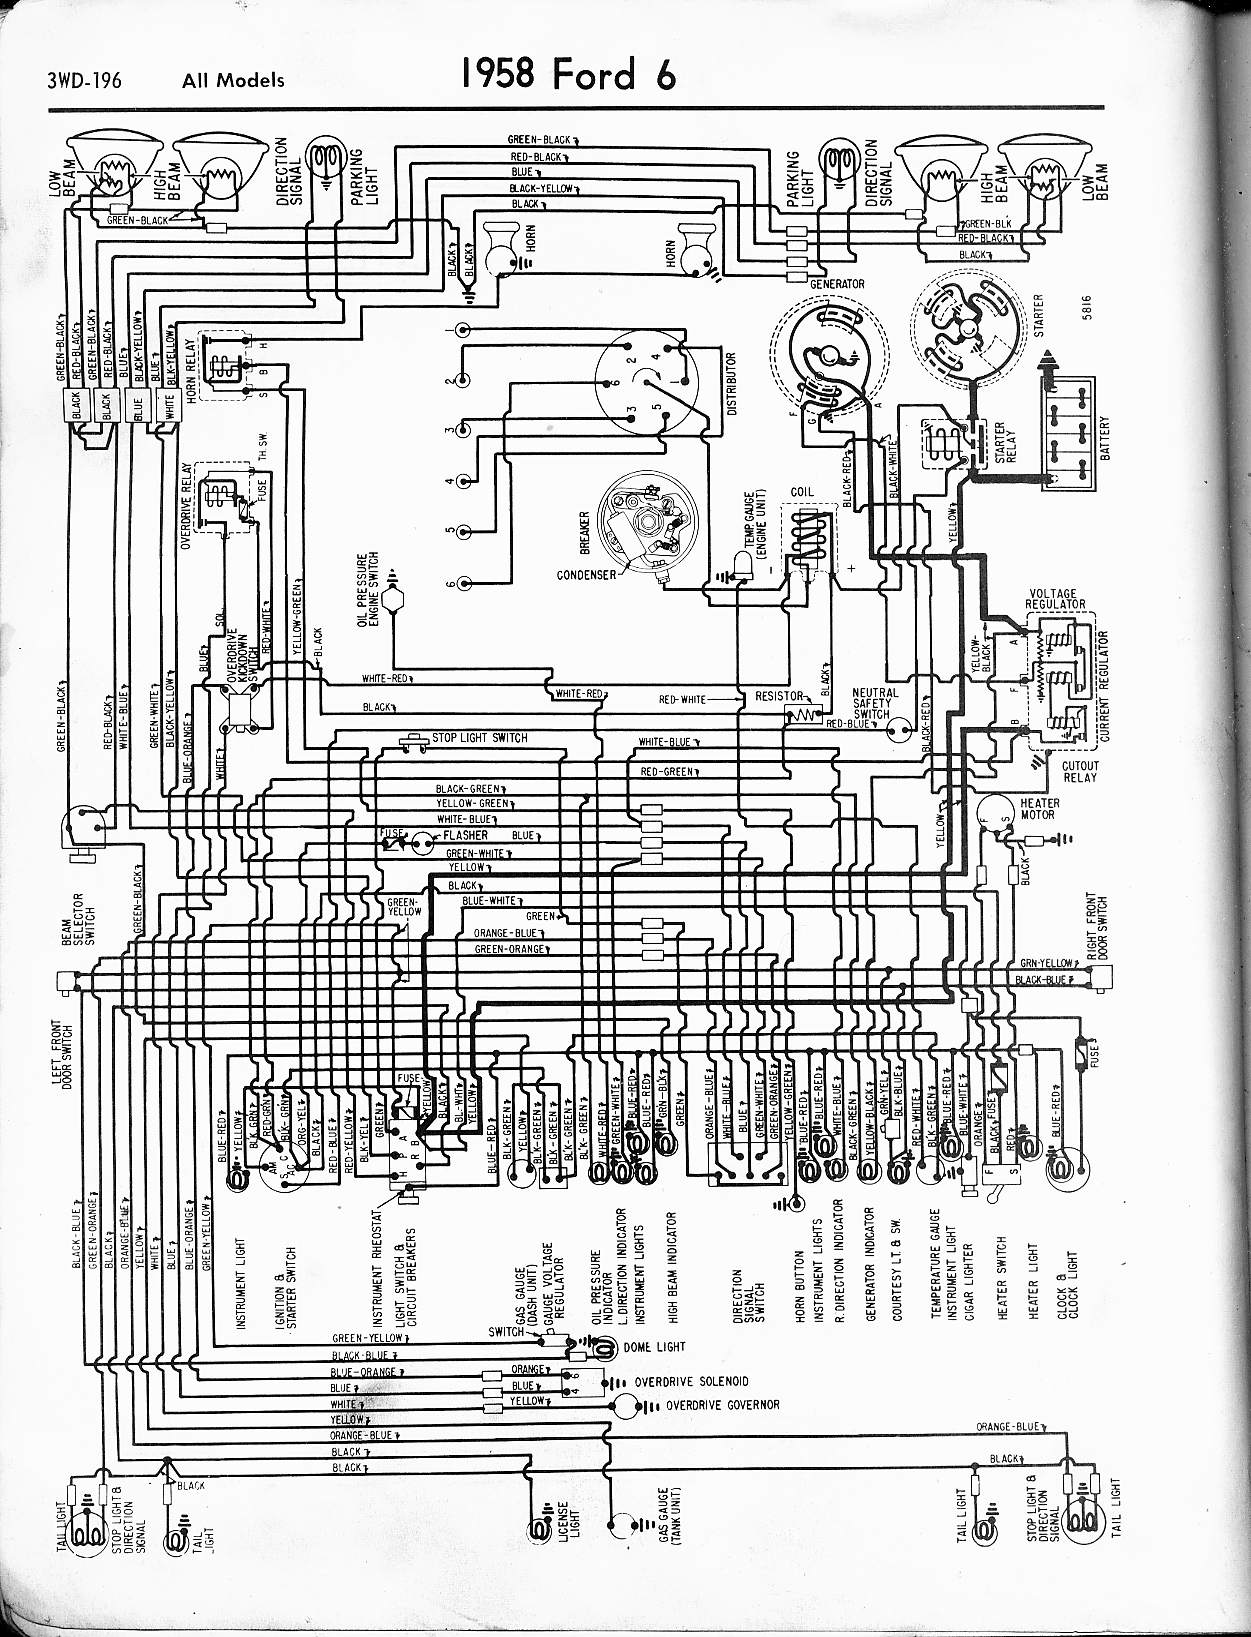 MWire5765 196 1960 ford wiring diagram 1964 ford ignition switch diagram 2003 ford truck fuse diagram at fashall.co